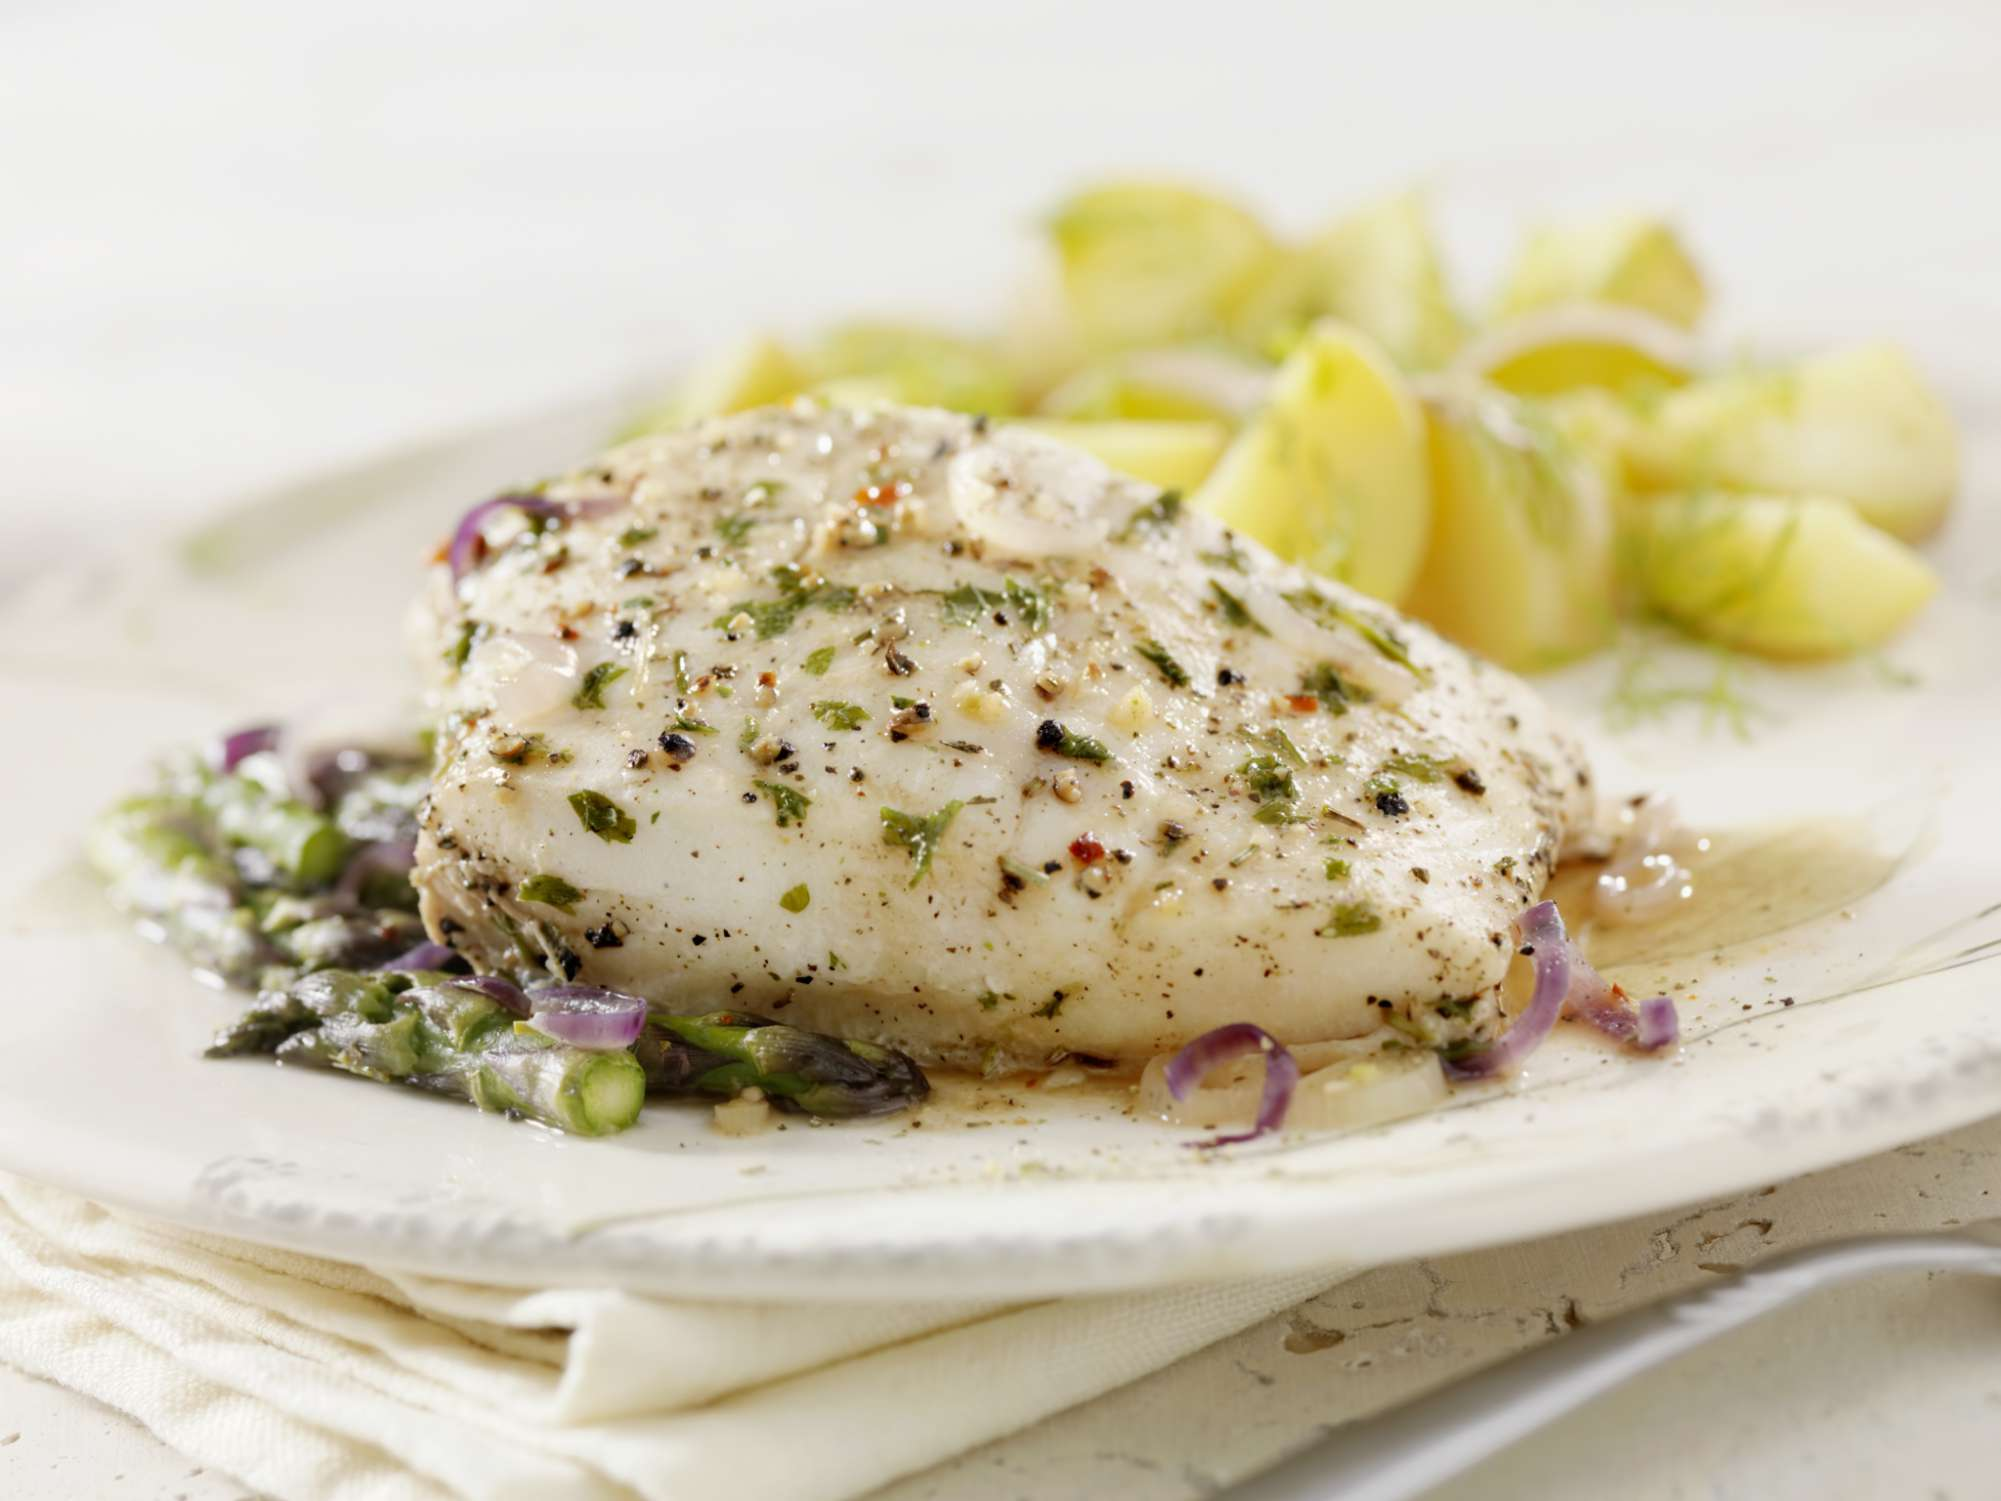 poached white fish on a plate with herbs and asparagus tips